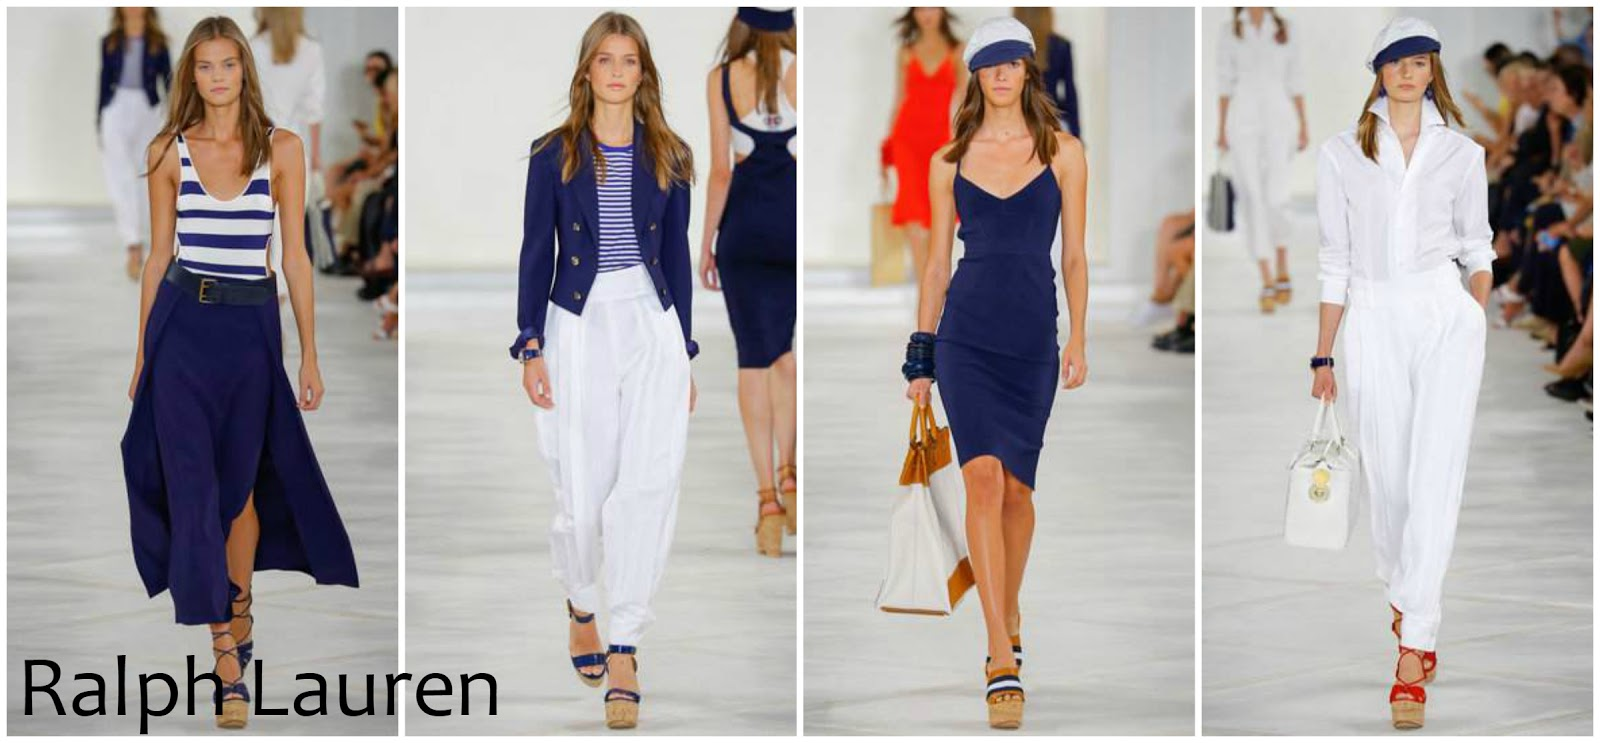 Ralph Lauren runway fashion